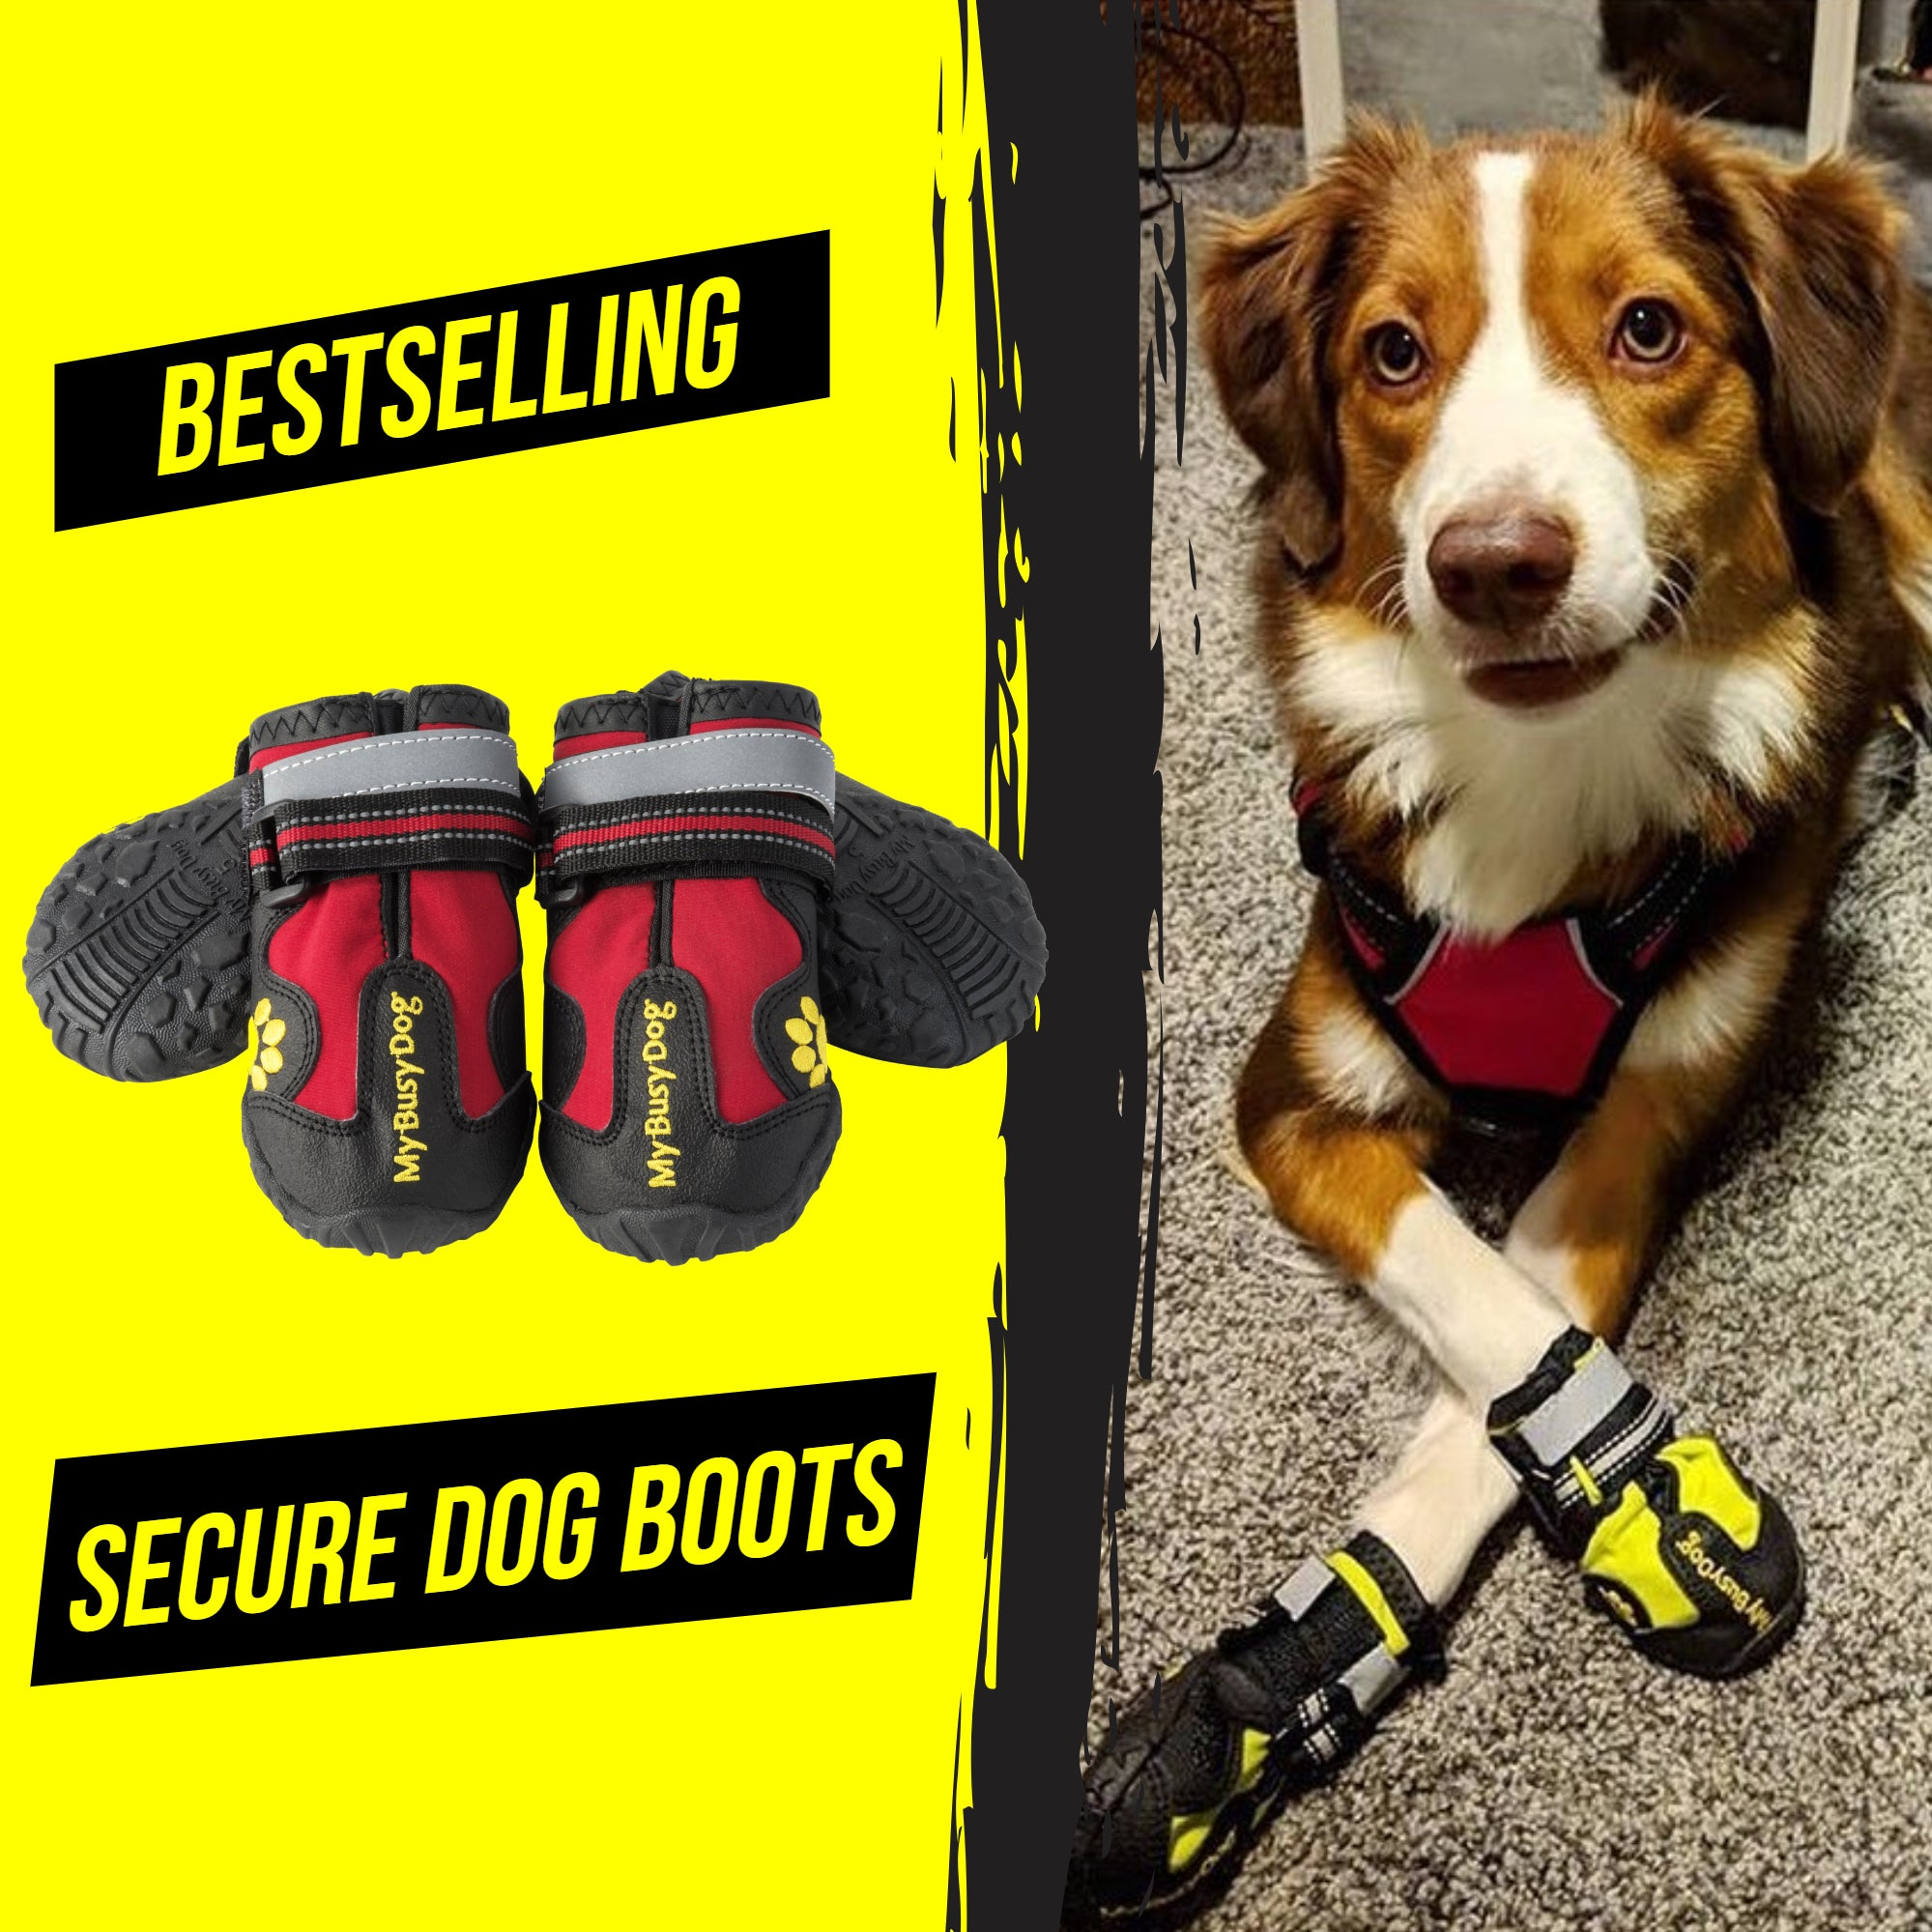 Secure Dog Boots